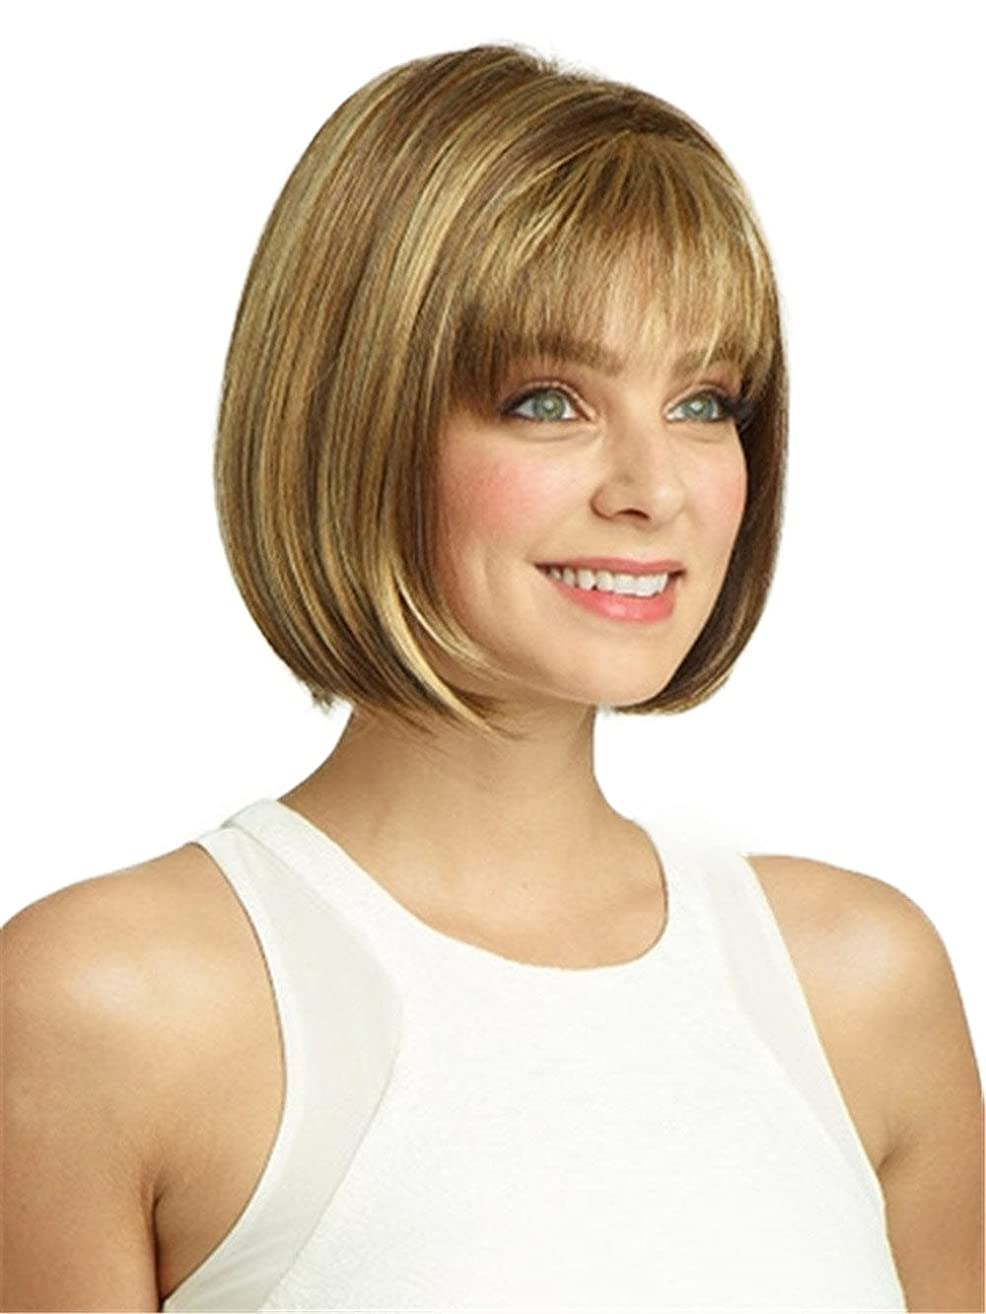 Wigs for White Women Short Straight Hair Wig with Bangs Natural As Real Hair with Wig Cap Z012